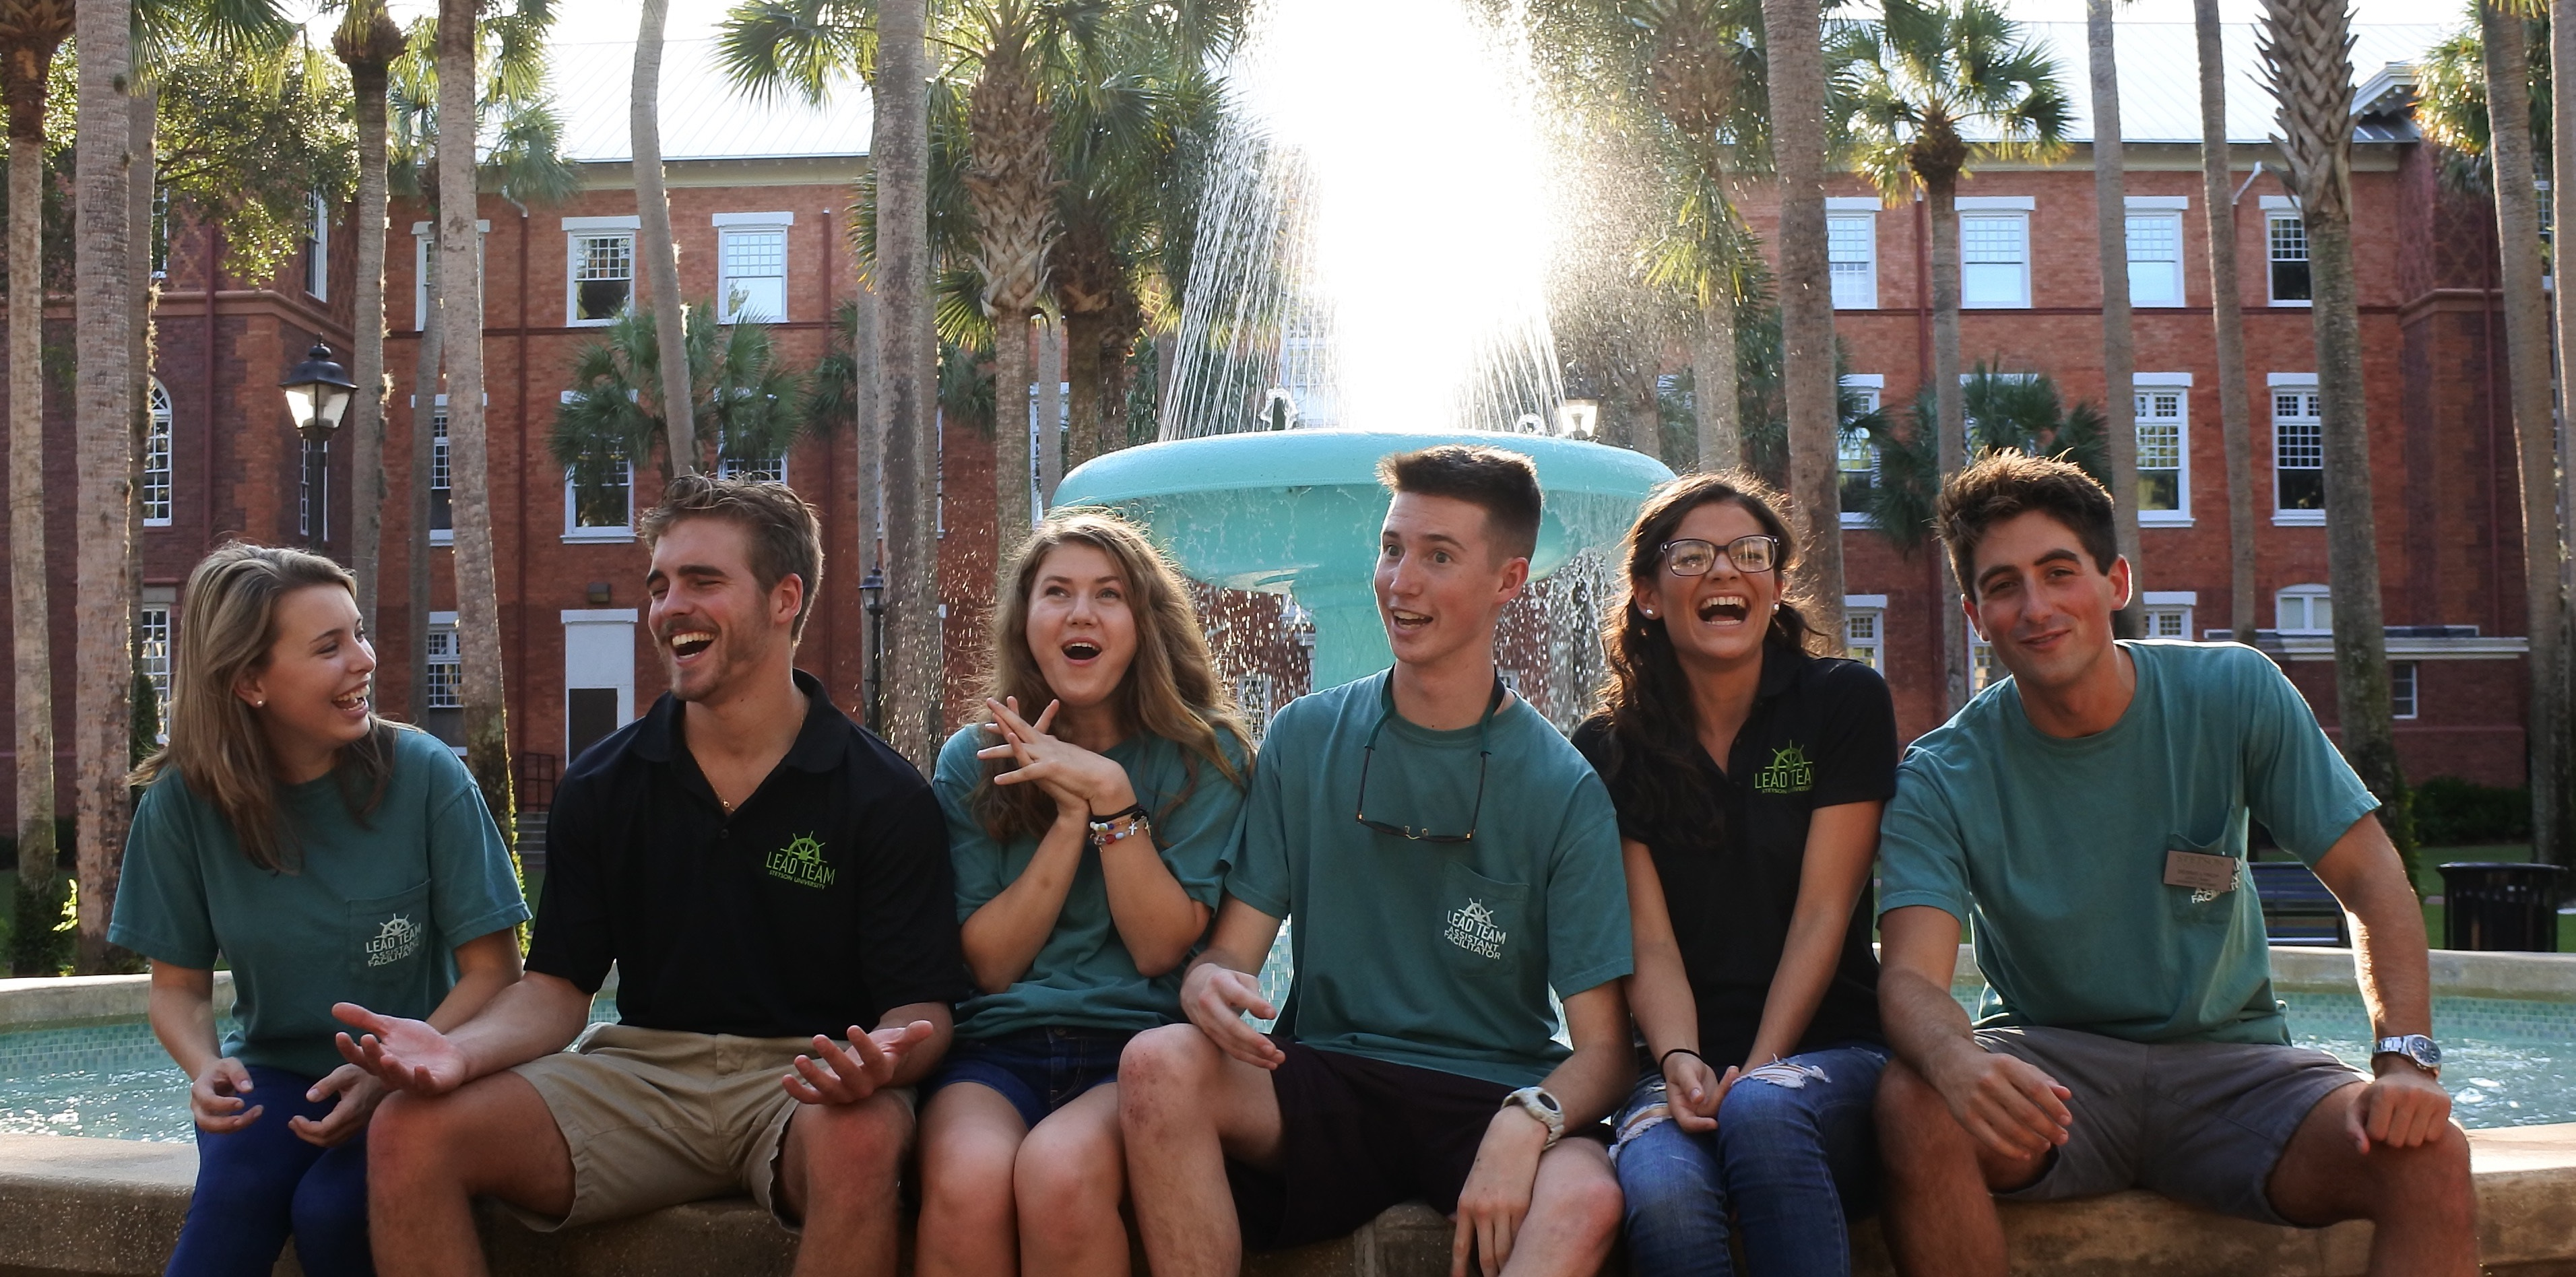 Six LEAD Team Members sitting on the fountain ledge laughing